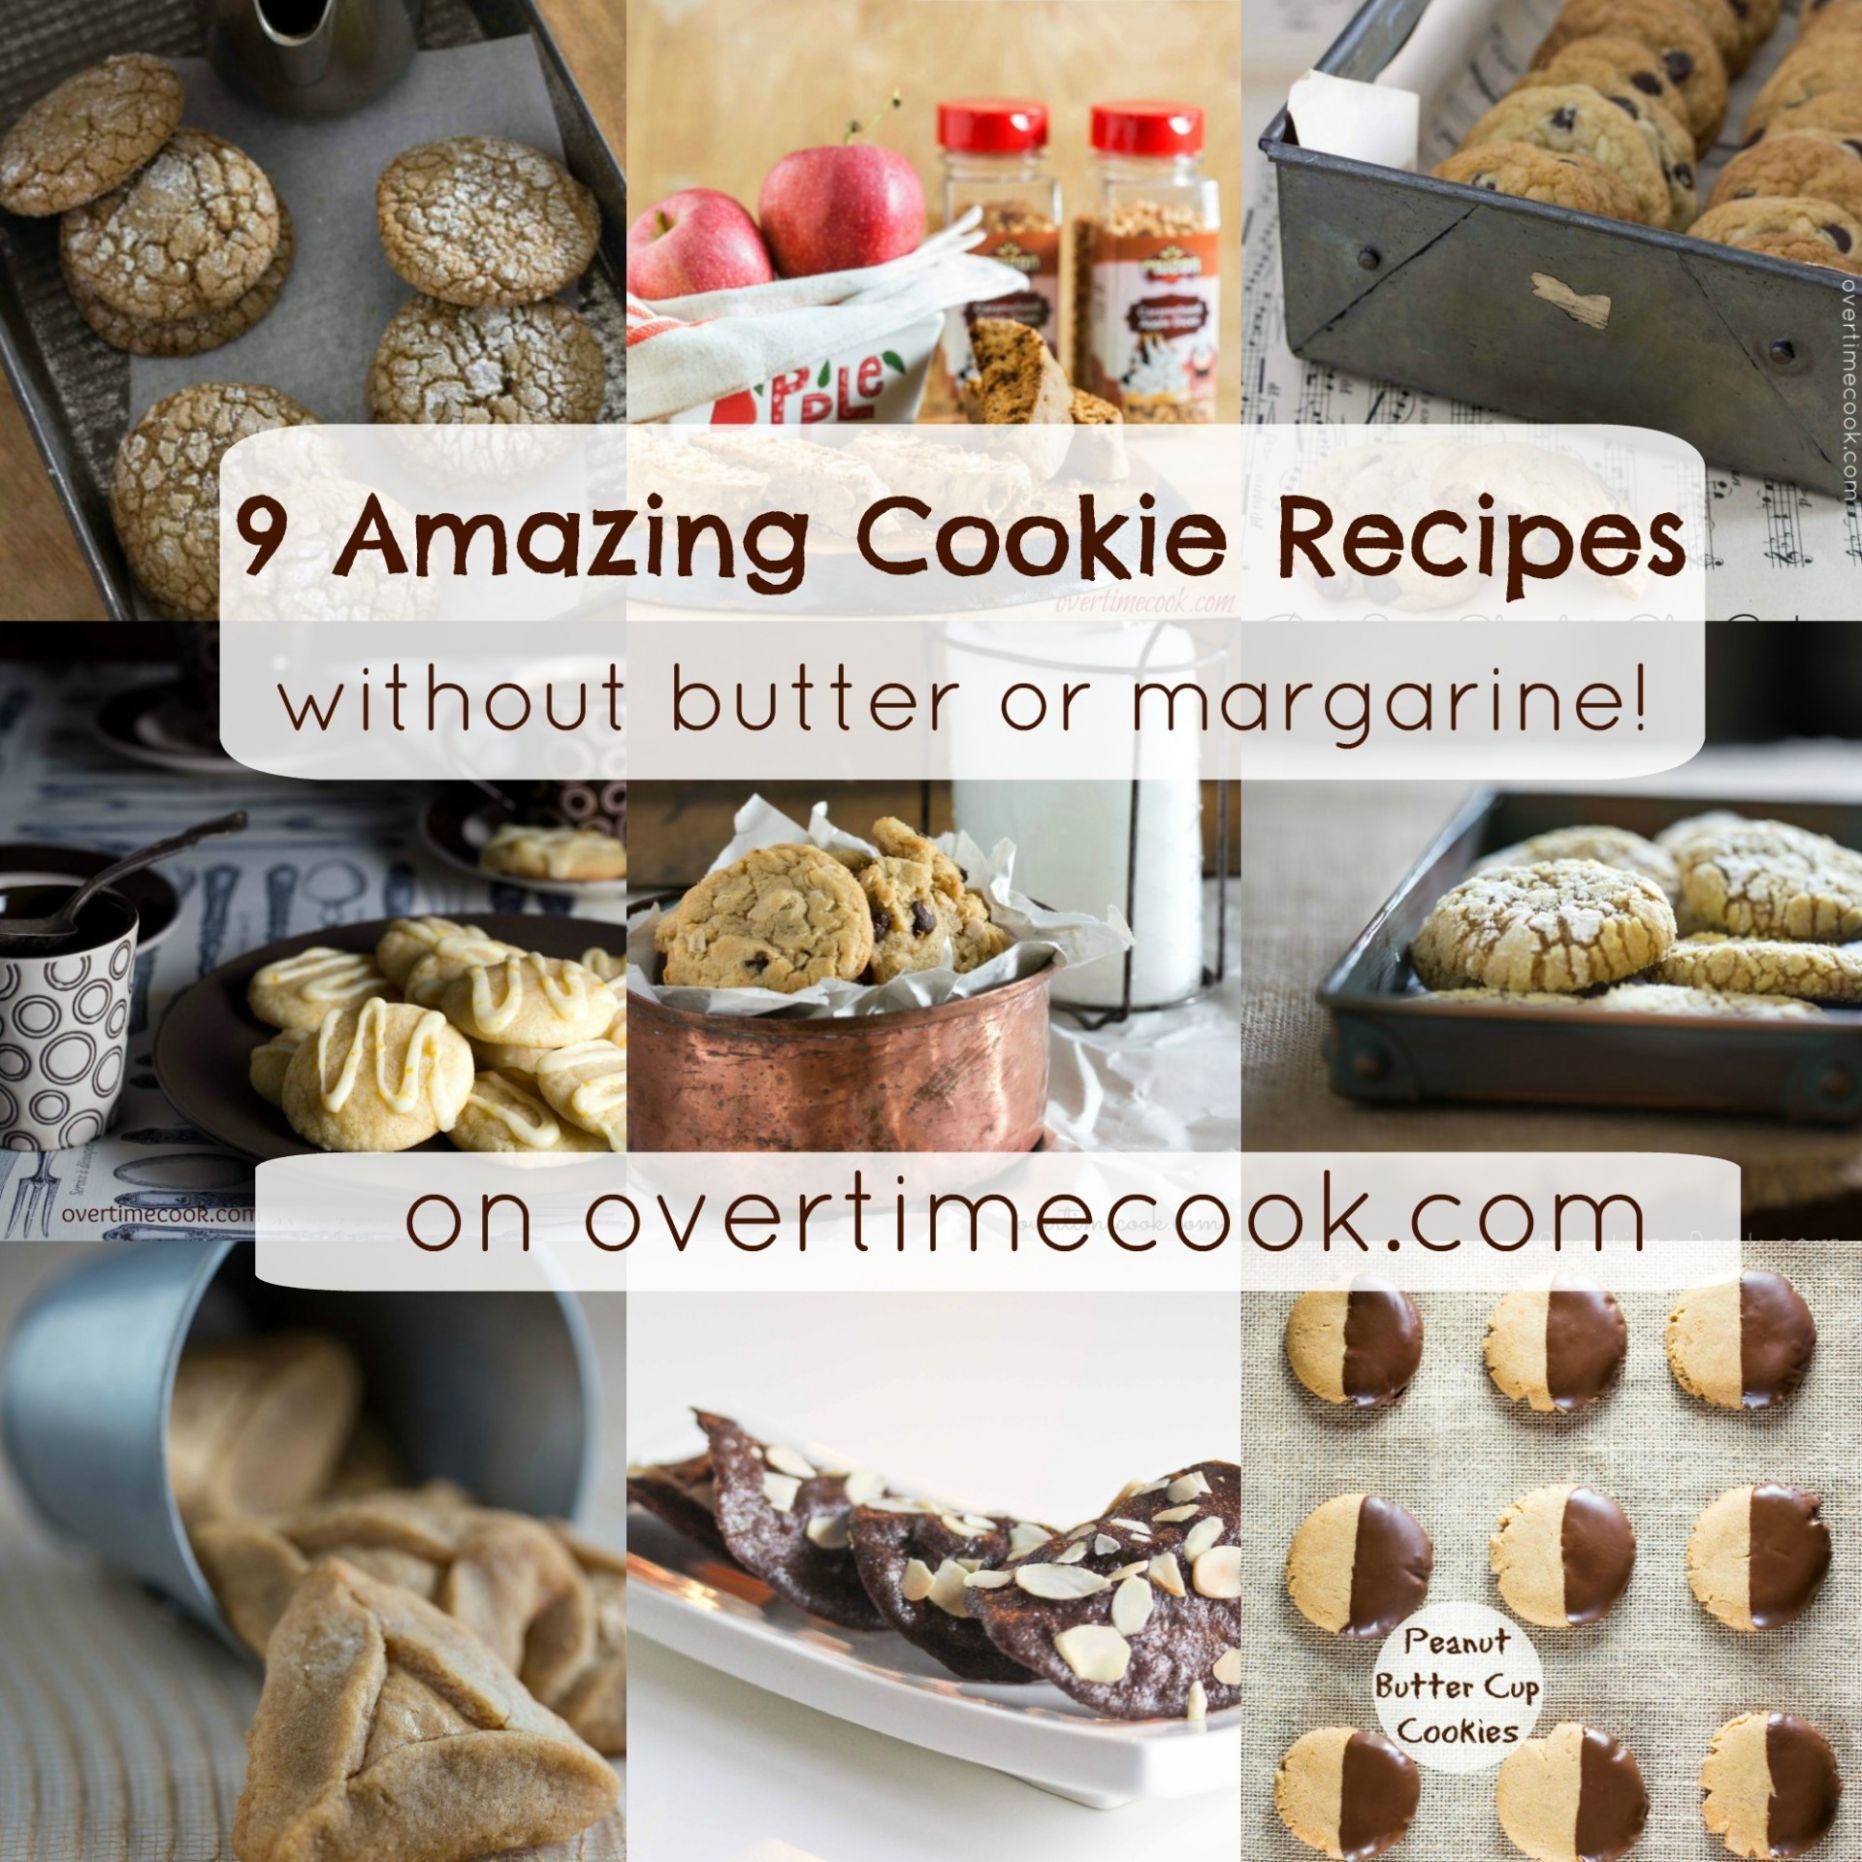 8 Amazing Cookie Recipes Without Butter or Margarine - Overtime Cook - Dessert Recipes No Butter